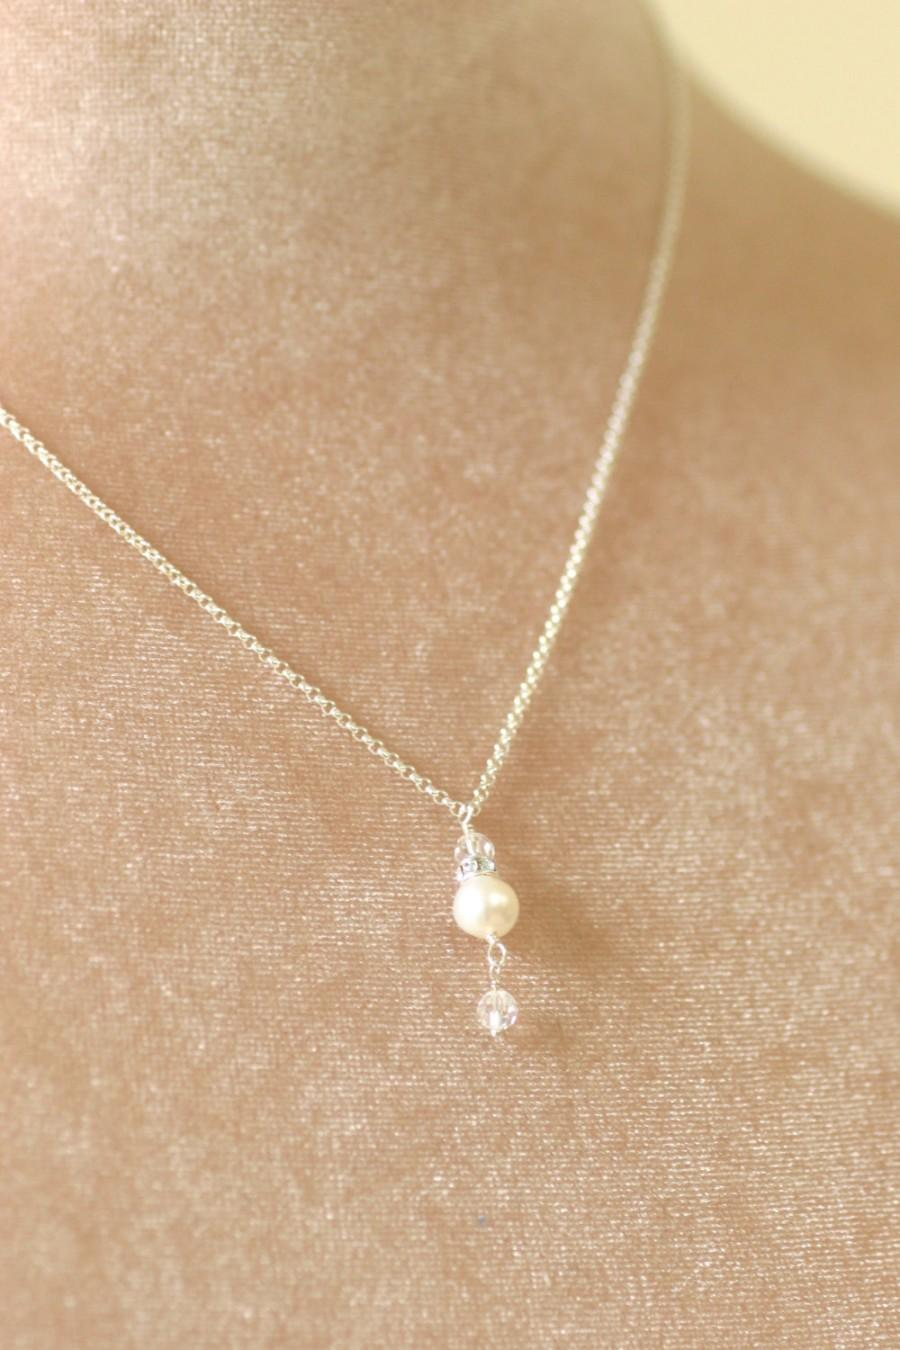 Hochzeit - Pearl pendant necklace, bridesmaid necklace pearl, bridesmaid jewelry bridal, Swarovski necklace - Claudia